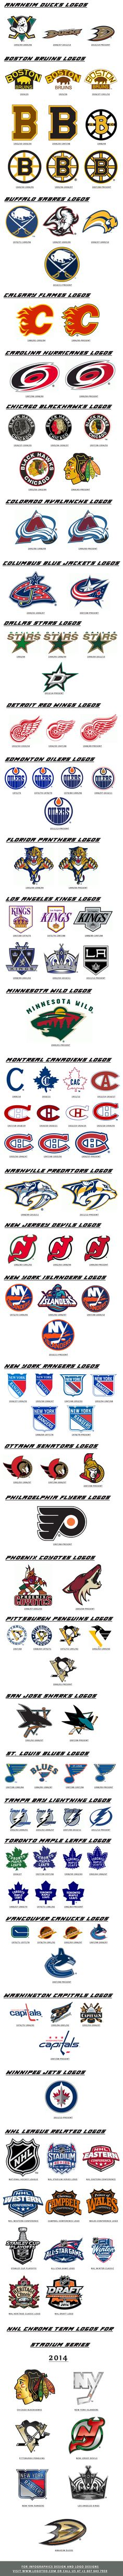 NHL Logo Design - Infographics - 1